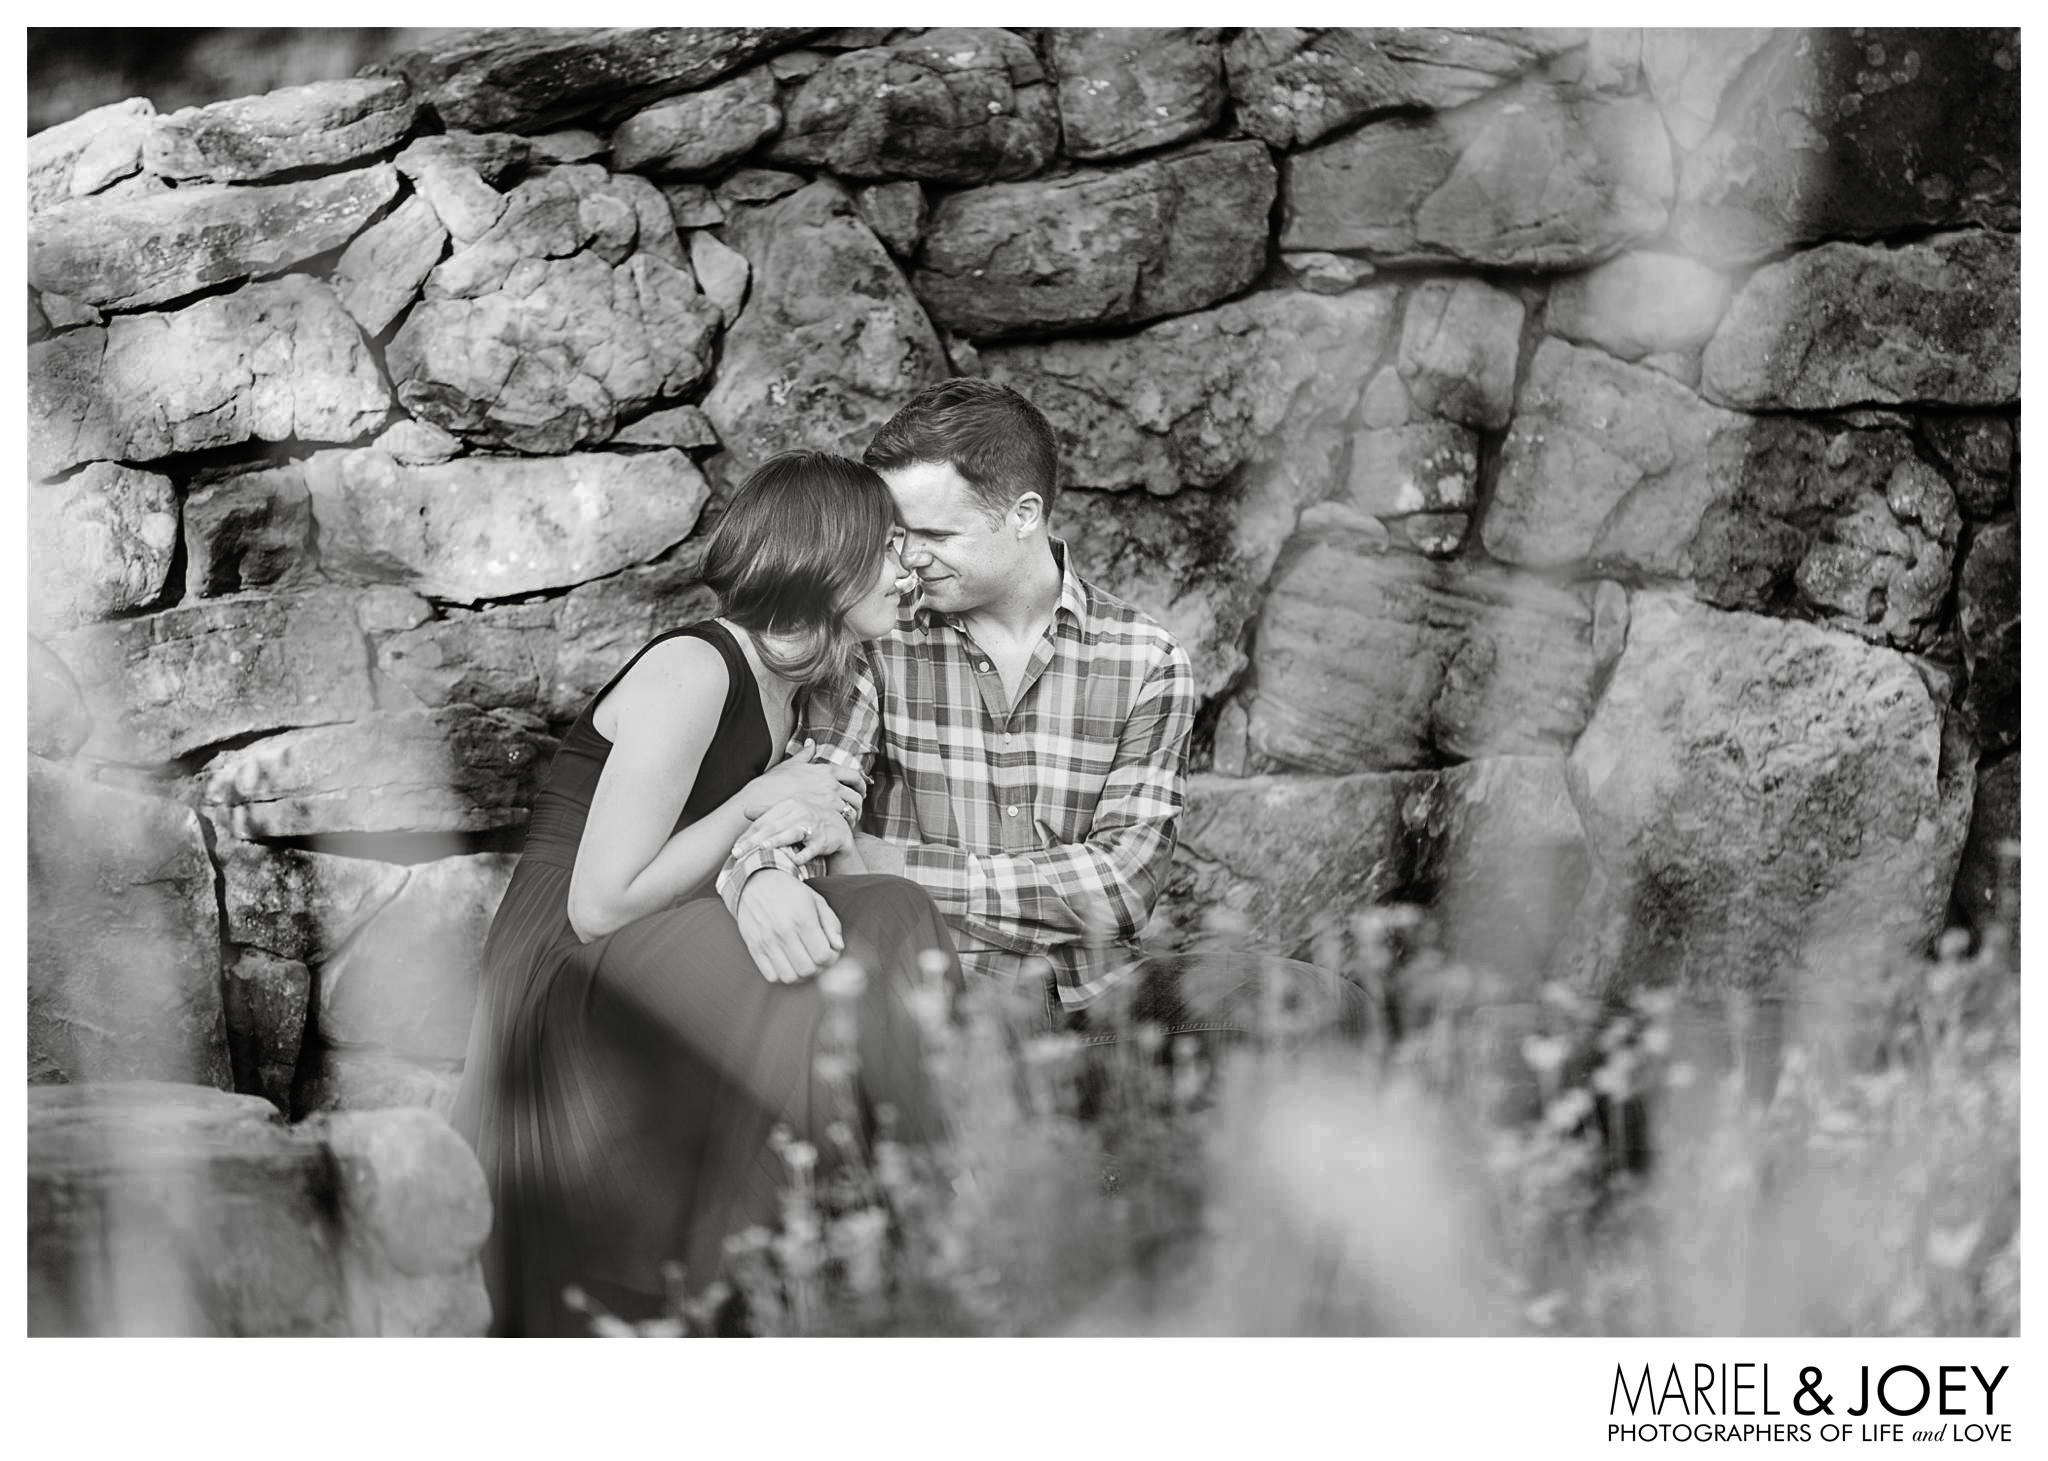 Husband and Wife wedding photographers